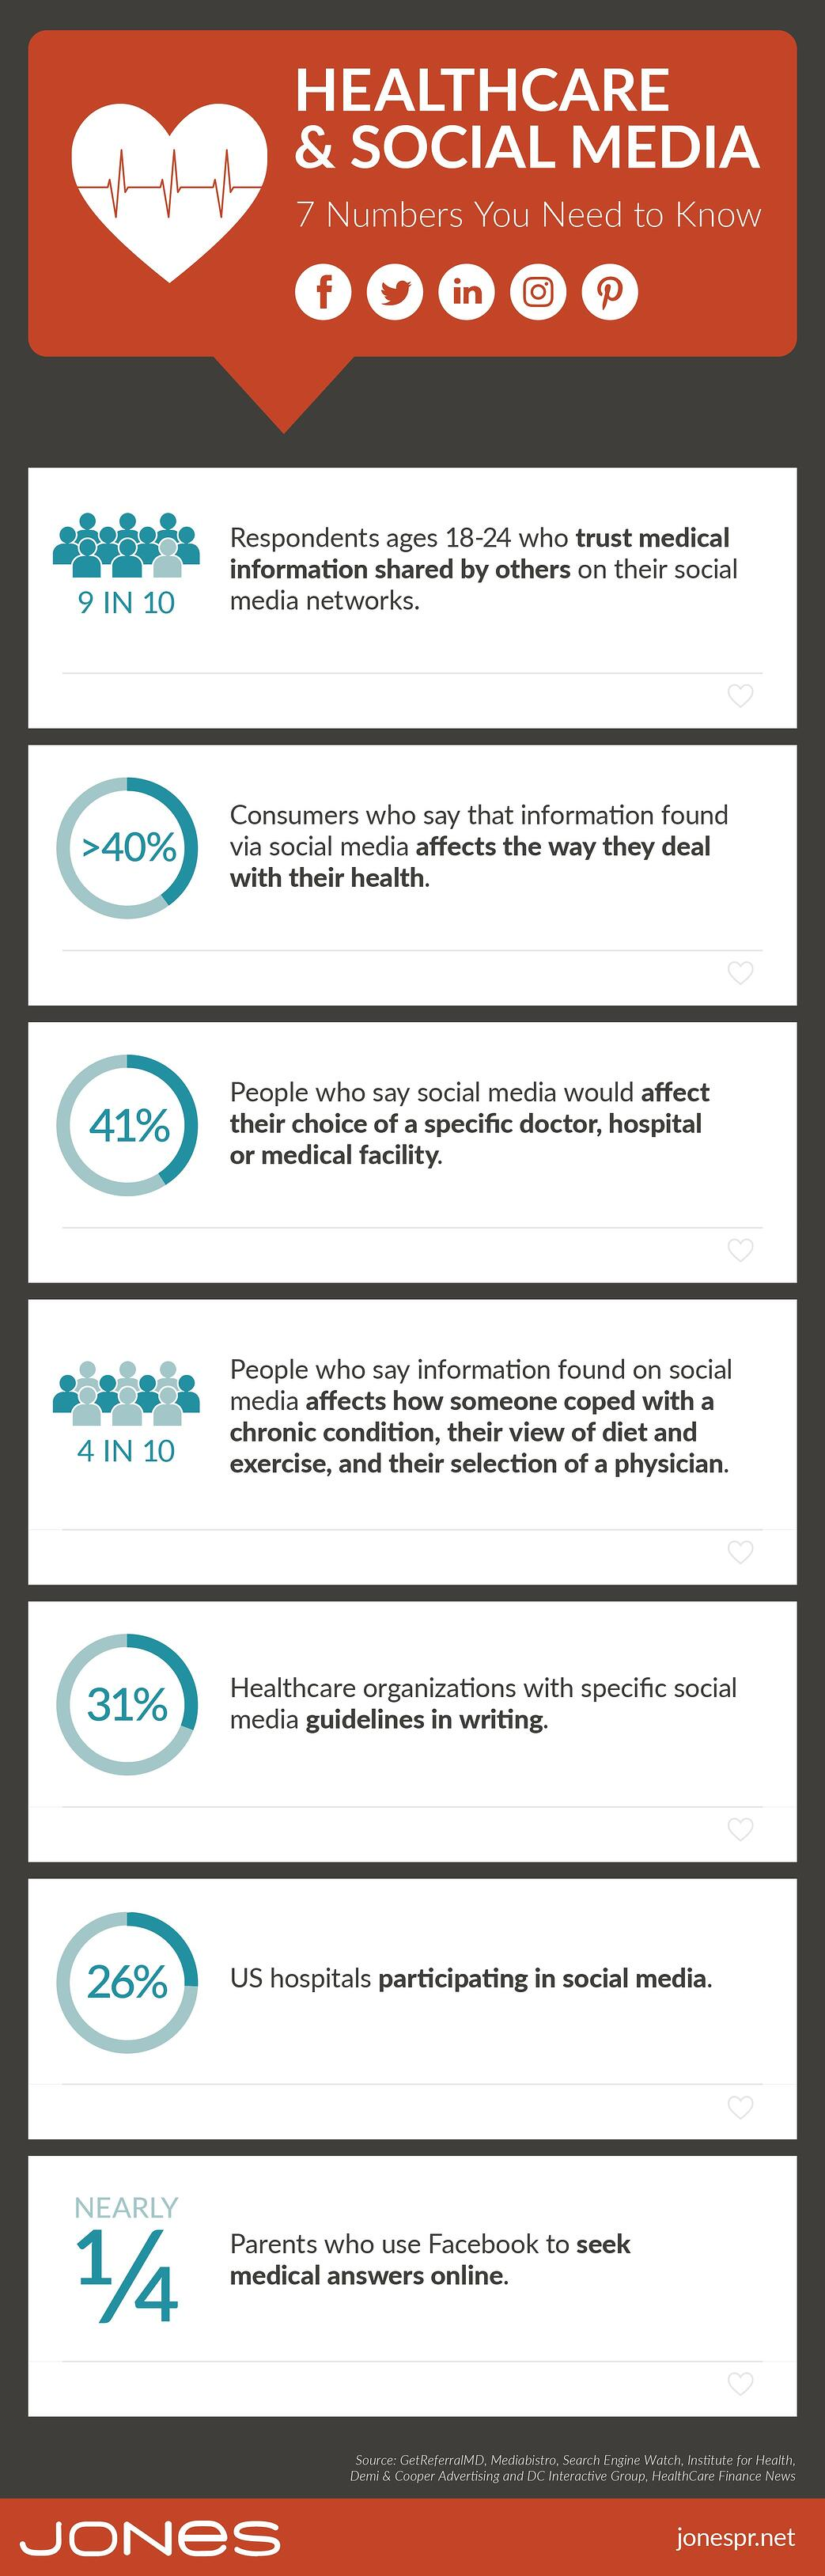 jones-infographic-healthcare-social-media-stats-3